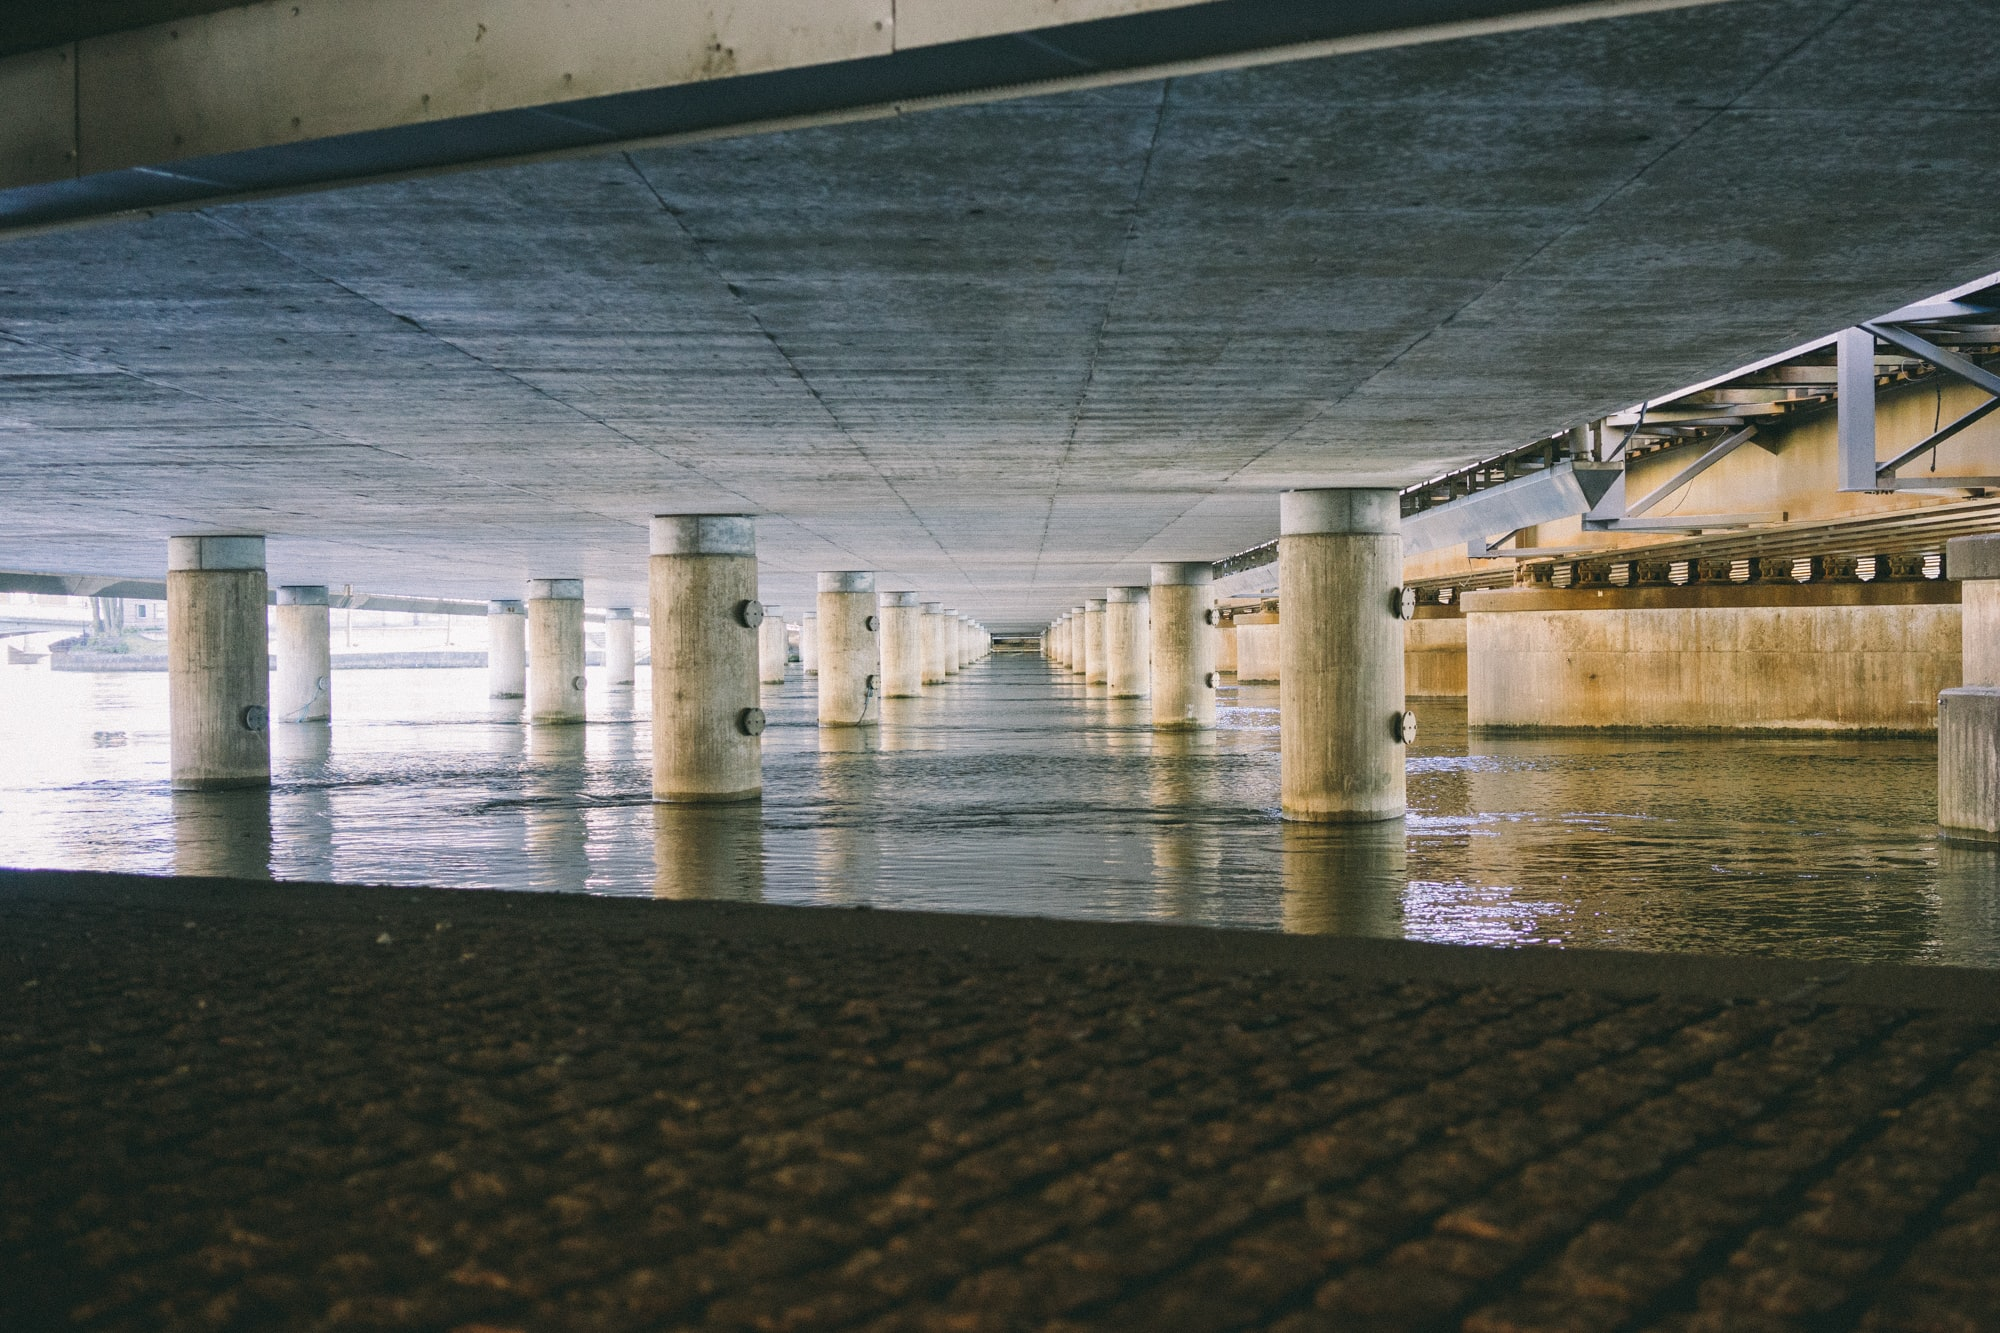 Underground abandoned car park with cement pillars and stylish architecture